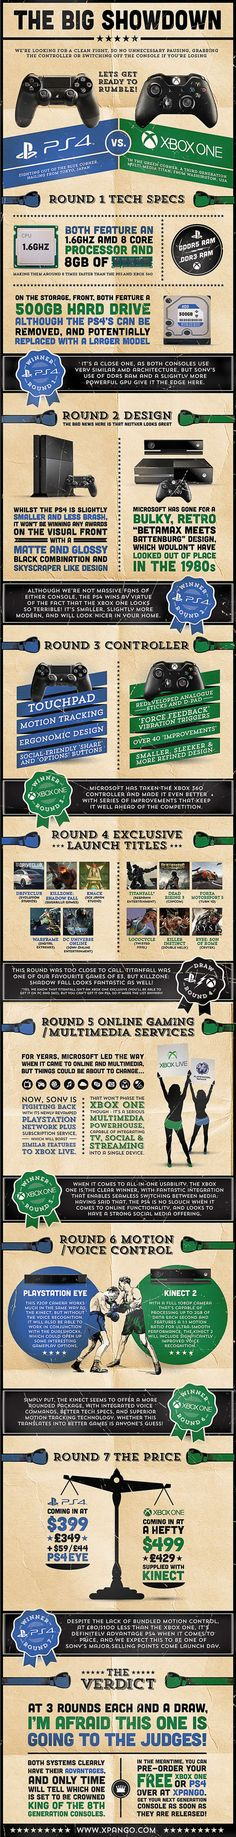 The Big Showdown [Infographic] --- The new generation of gaming consoles is getting closer with each passing day (PS4 – November 15th, Xbox One – November 22nd), and many gamers may still be trying to decide which system to go with. Now that Microsoft has removed many of the features that irked consumers about the Xbox One when it was revealed, both it and the Playstation 4 seem to be on more even ground.